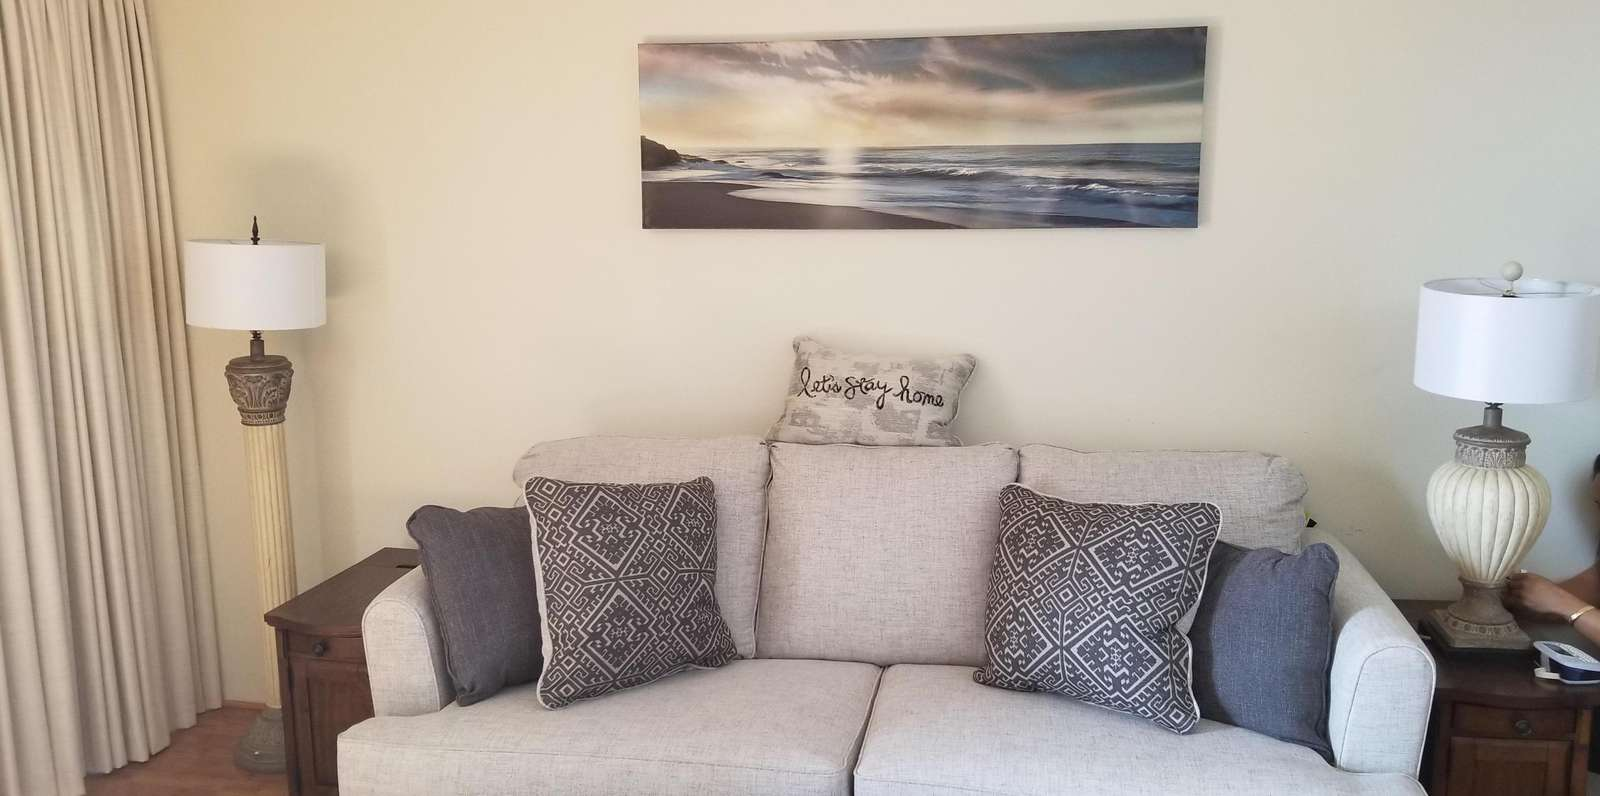 NEW art on wall above NEW memory foam sofa sleeper